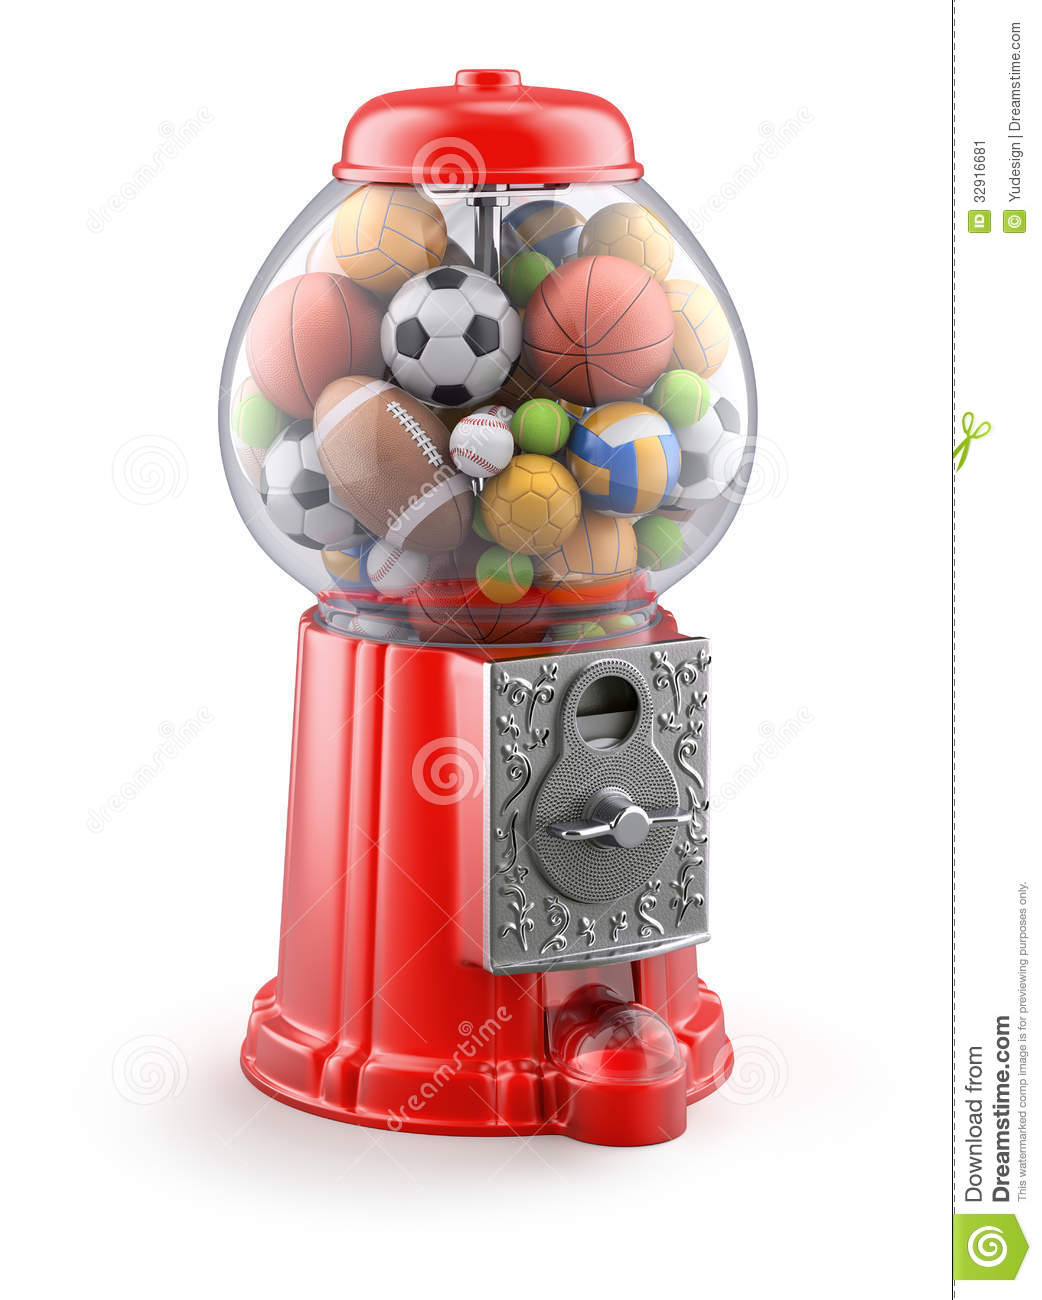 gumball machine with balls